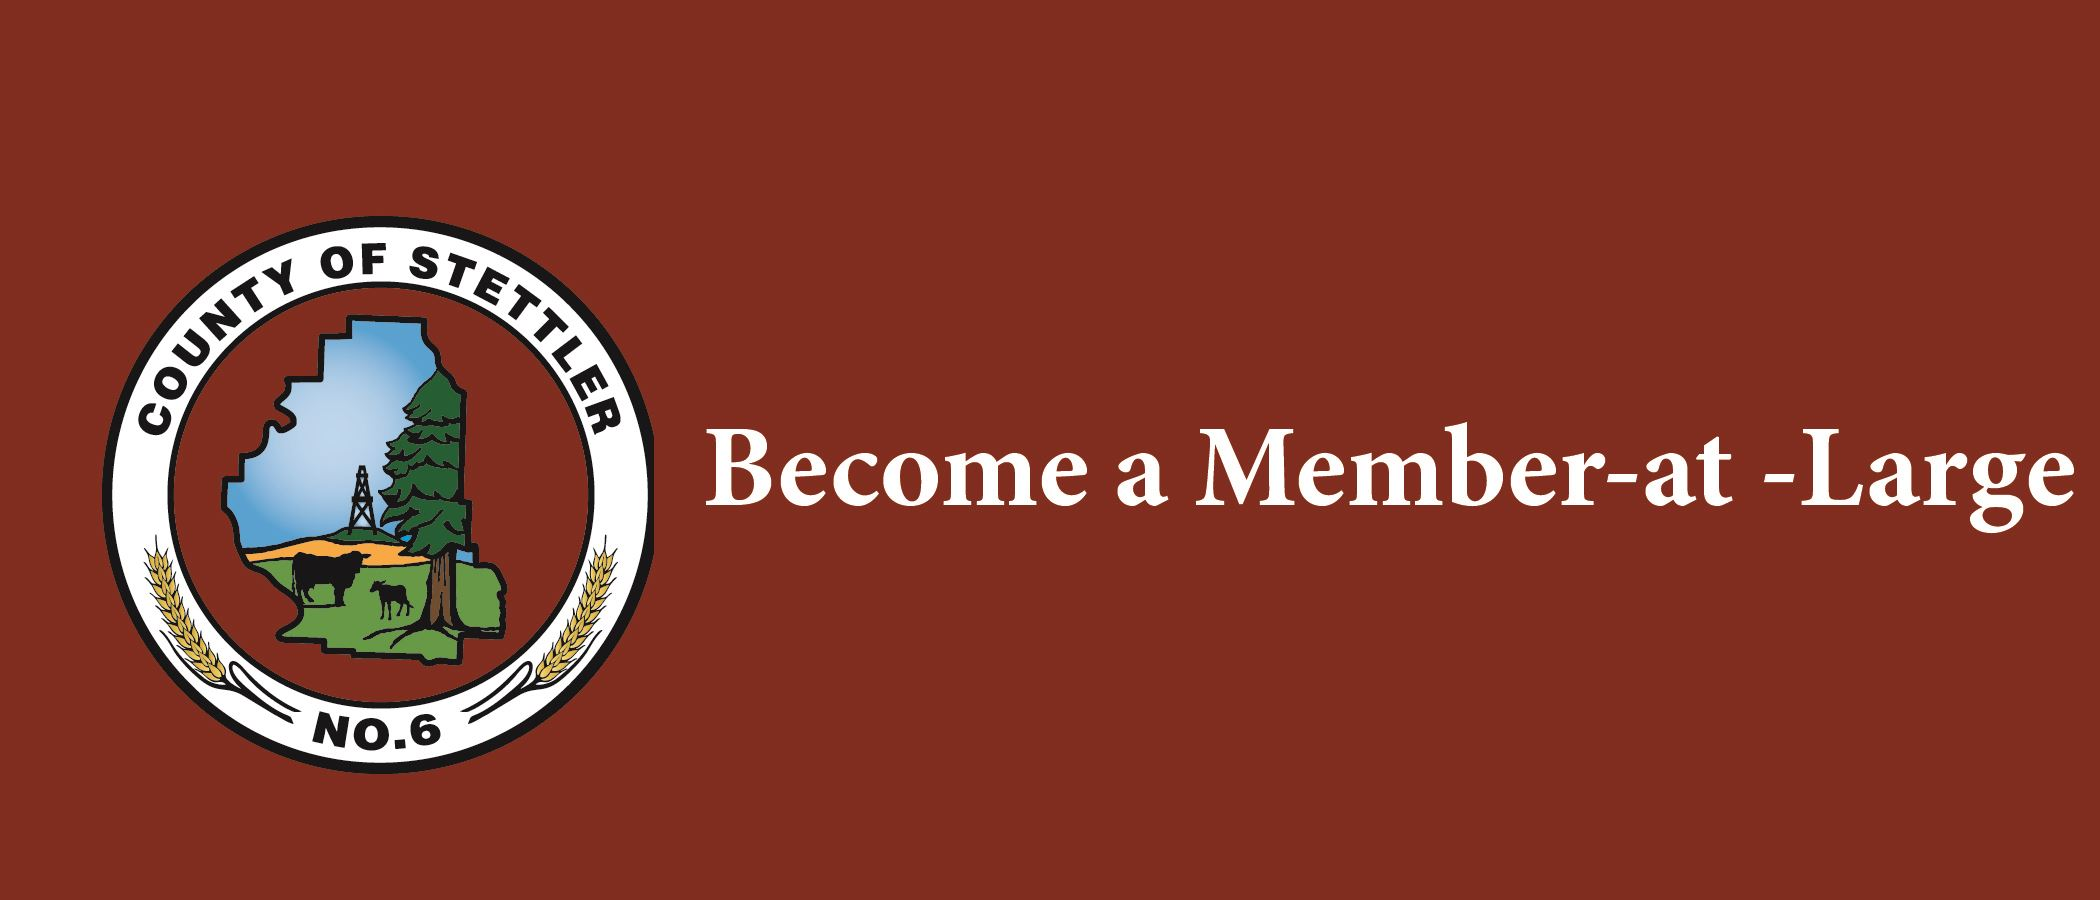 Become a Member at Large